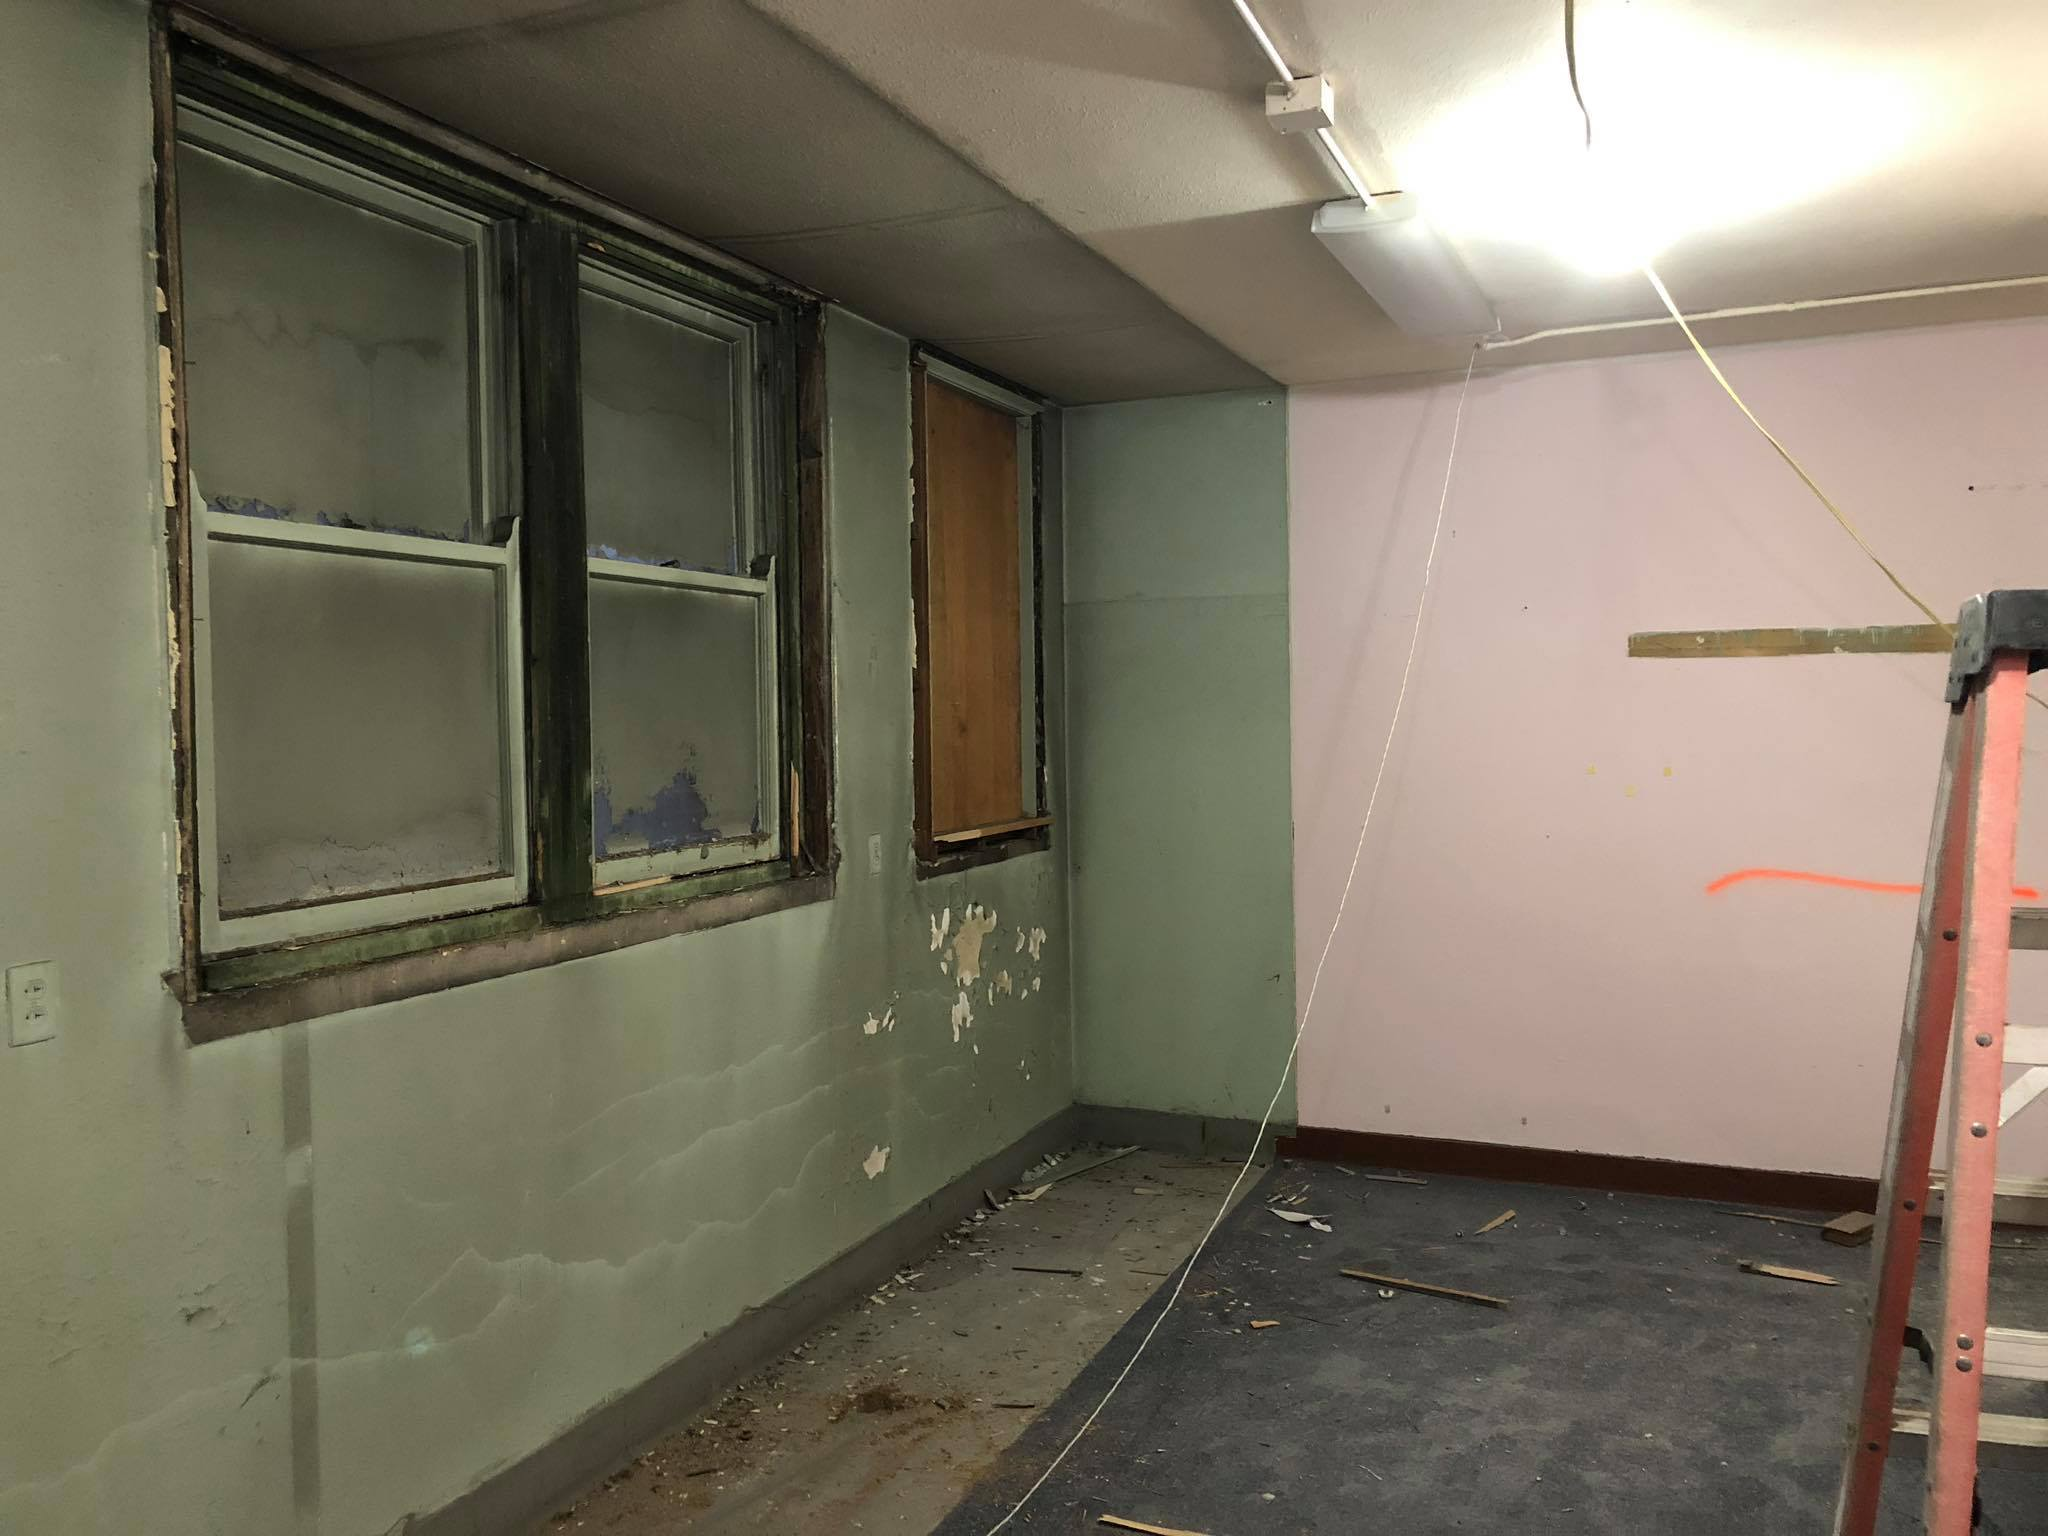 These windows were hidden behind the vesting cabinets on the main level.